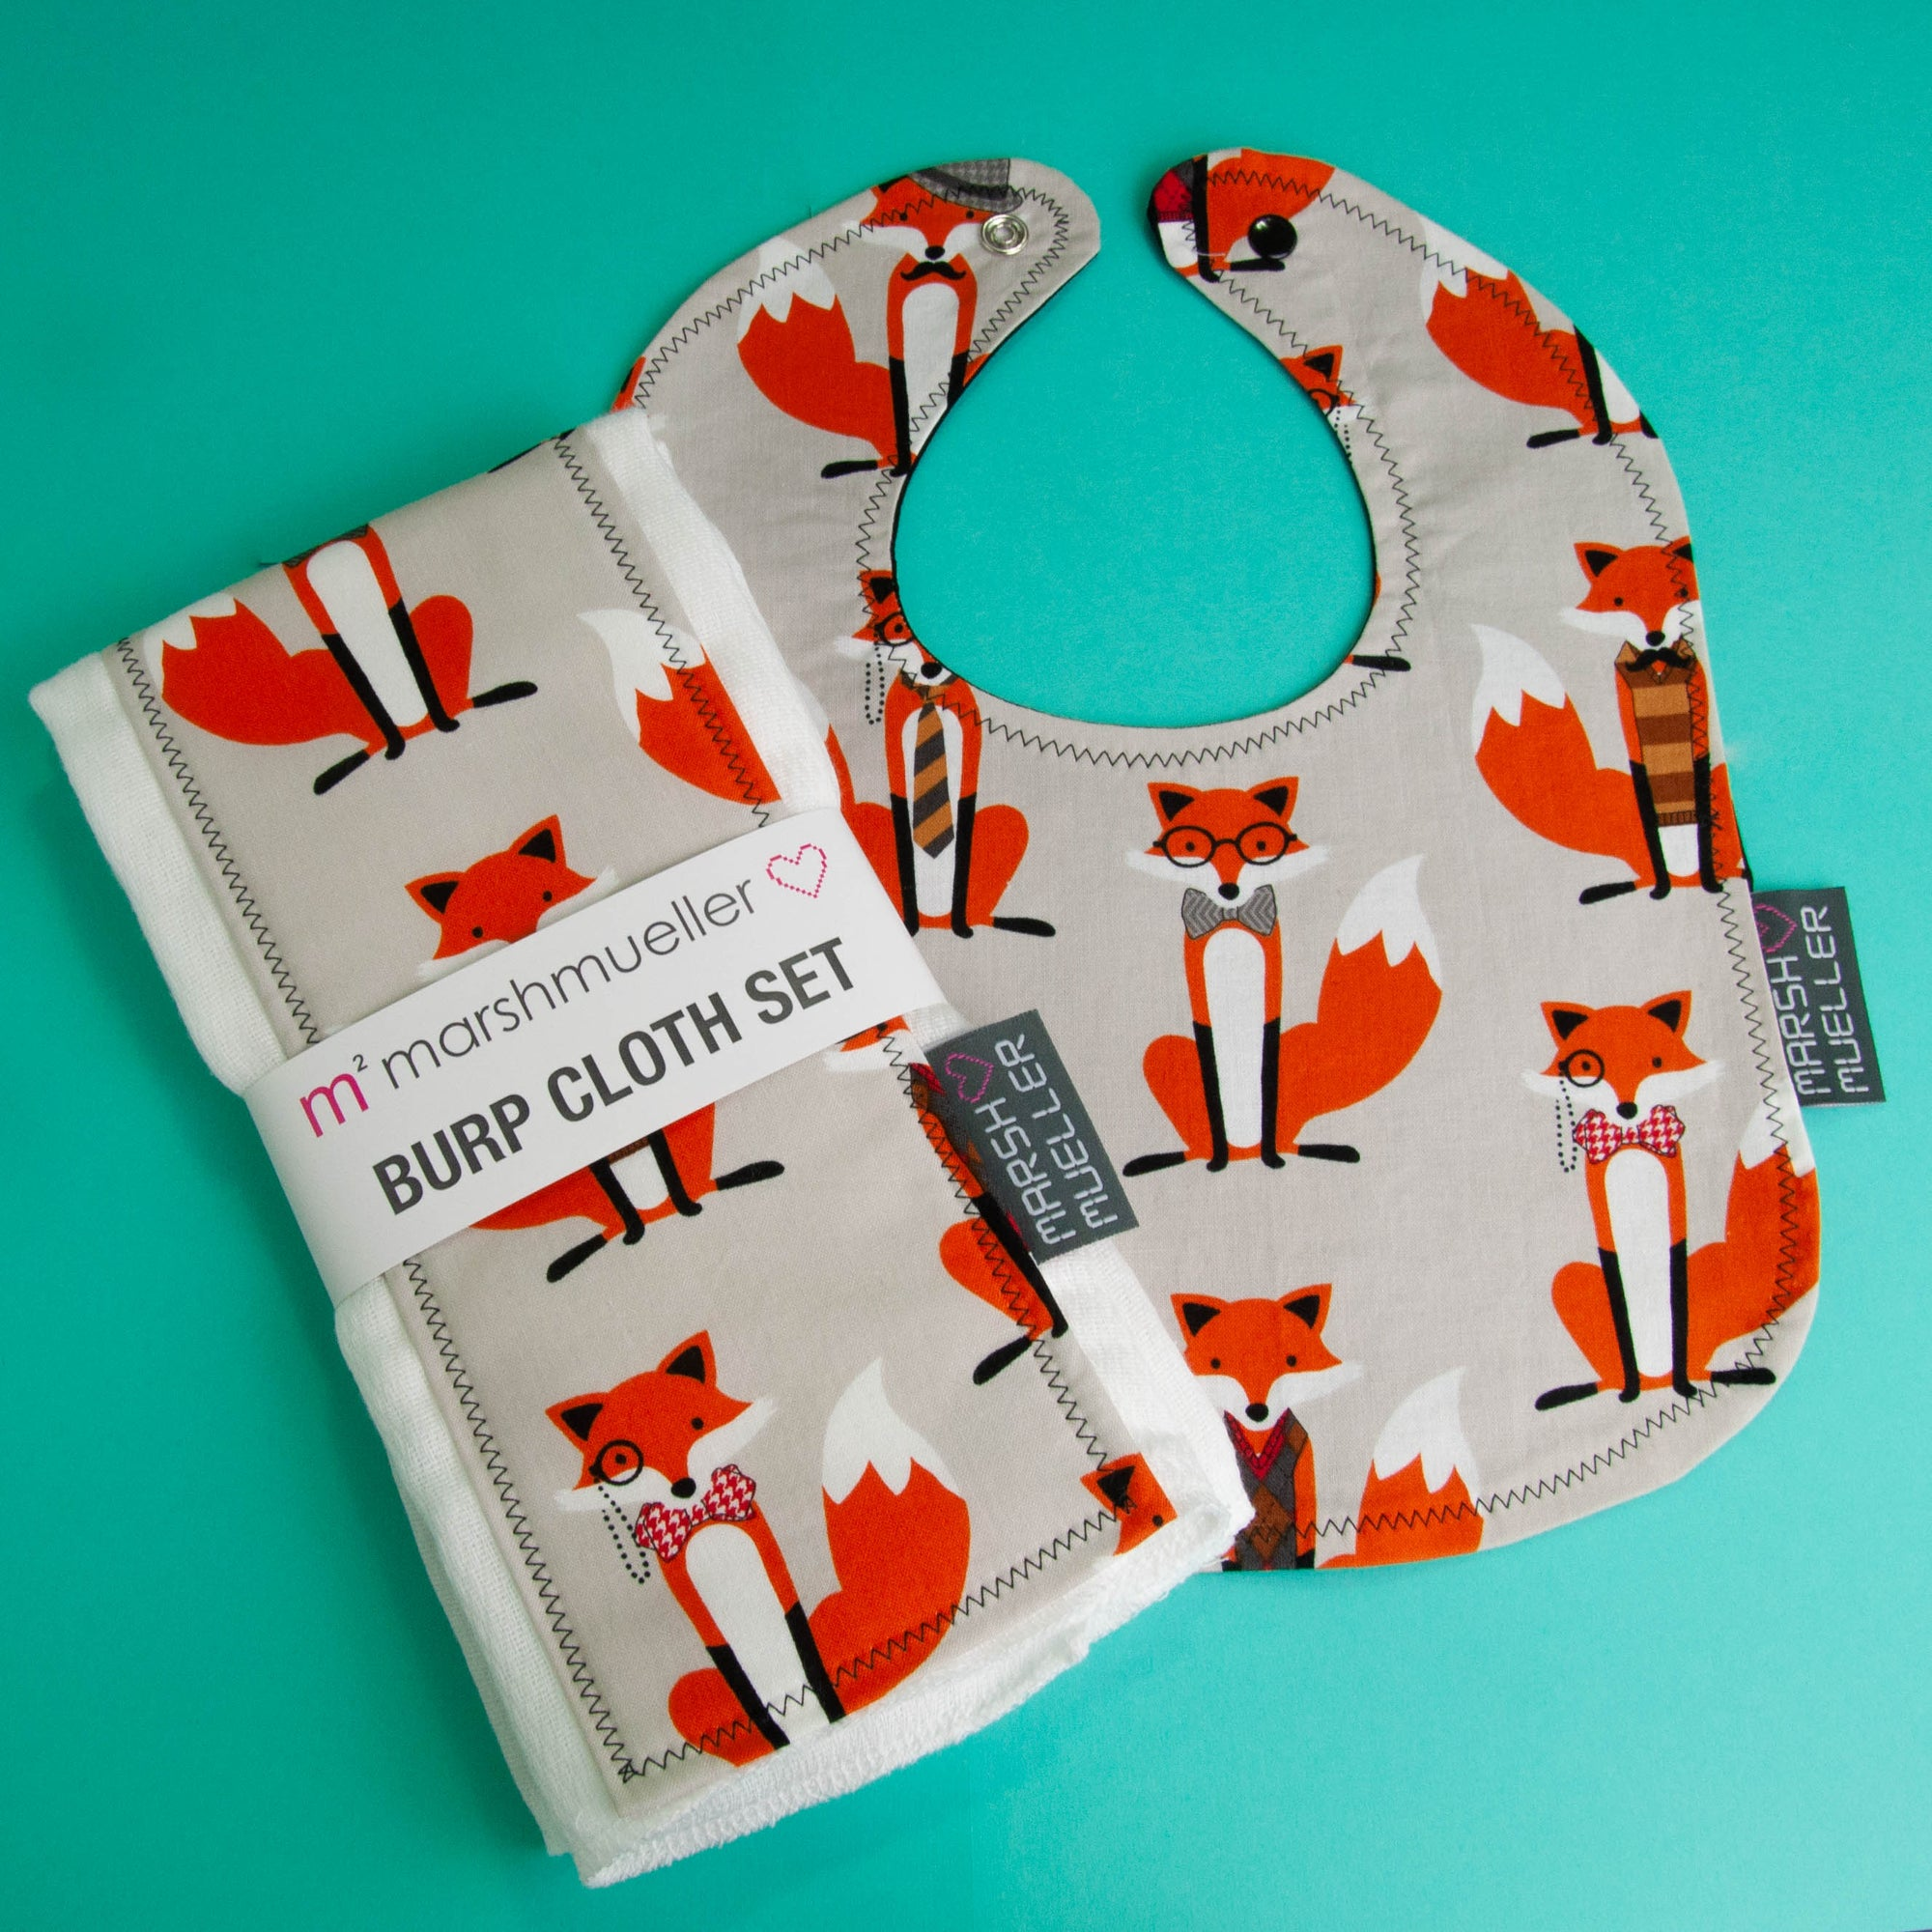 image of Marshmueller burp cloth set and bib flatlay made from an orange fox fabric with a grey background. Products are on a bright teal solid background